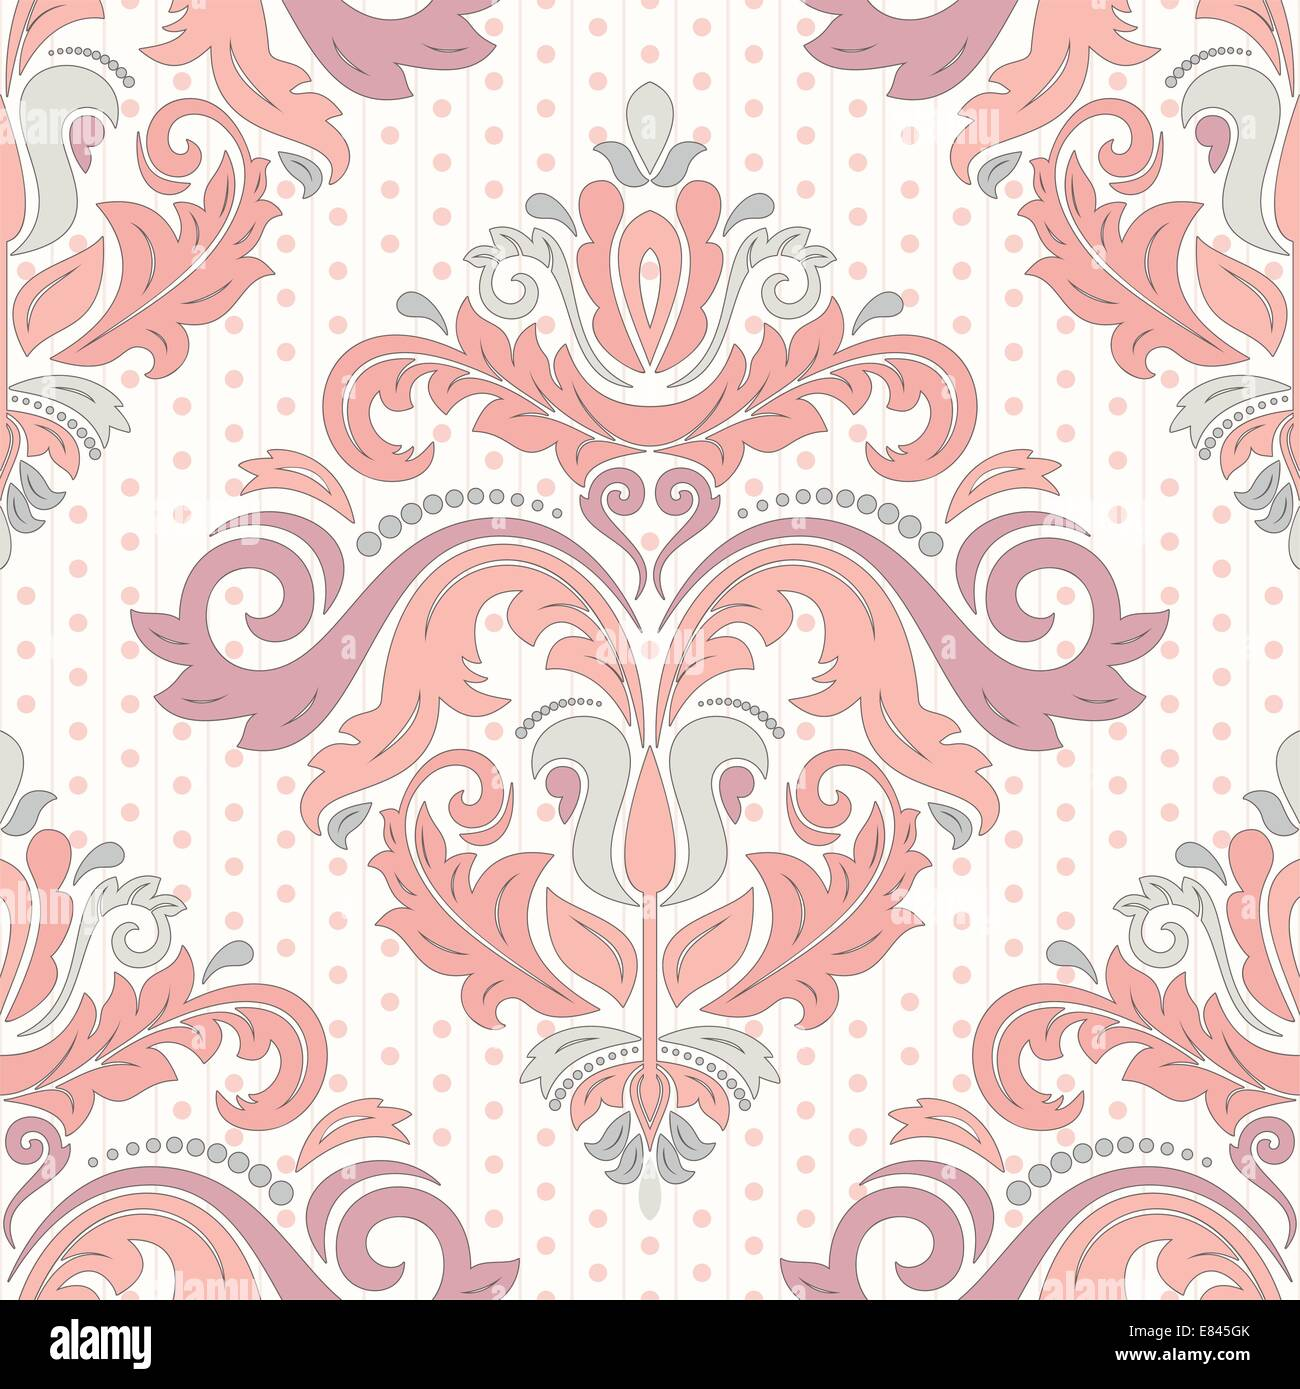 Floral vector oriental pattern with damask, arabesque and floral elements. Seamless abstract wallpaper and background - Stock Image